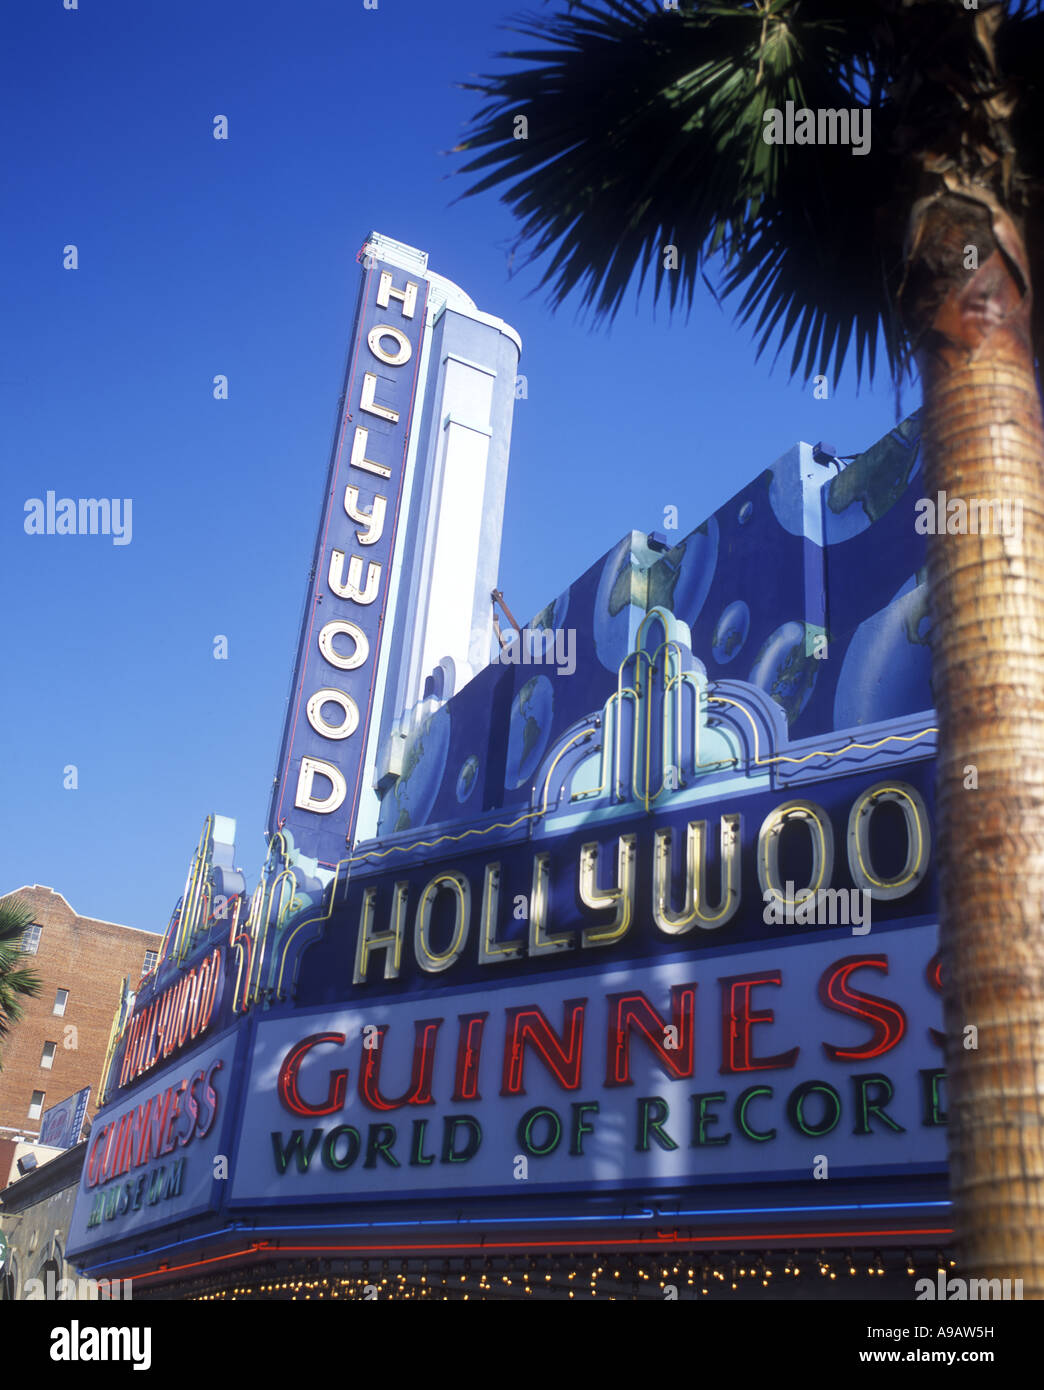 GUINNESS WORLD OF RECORDS MUSEUM HOLLYWOOD BOULEVARD LOS ANGELES CALIFORNIA USA - Stock Image